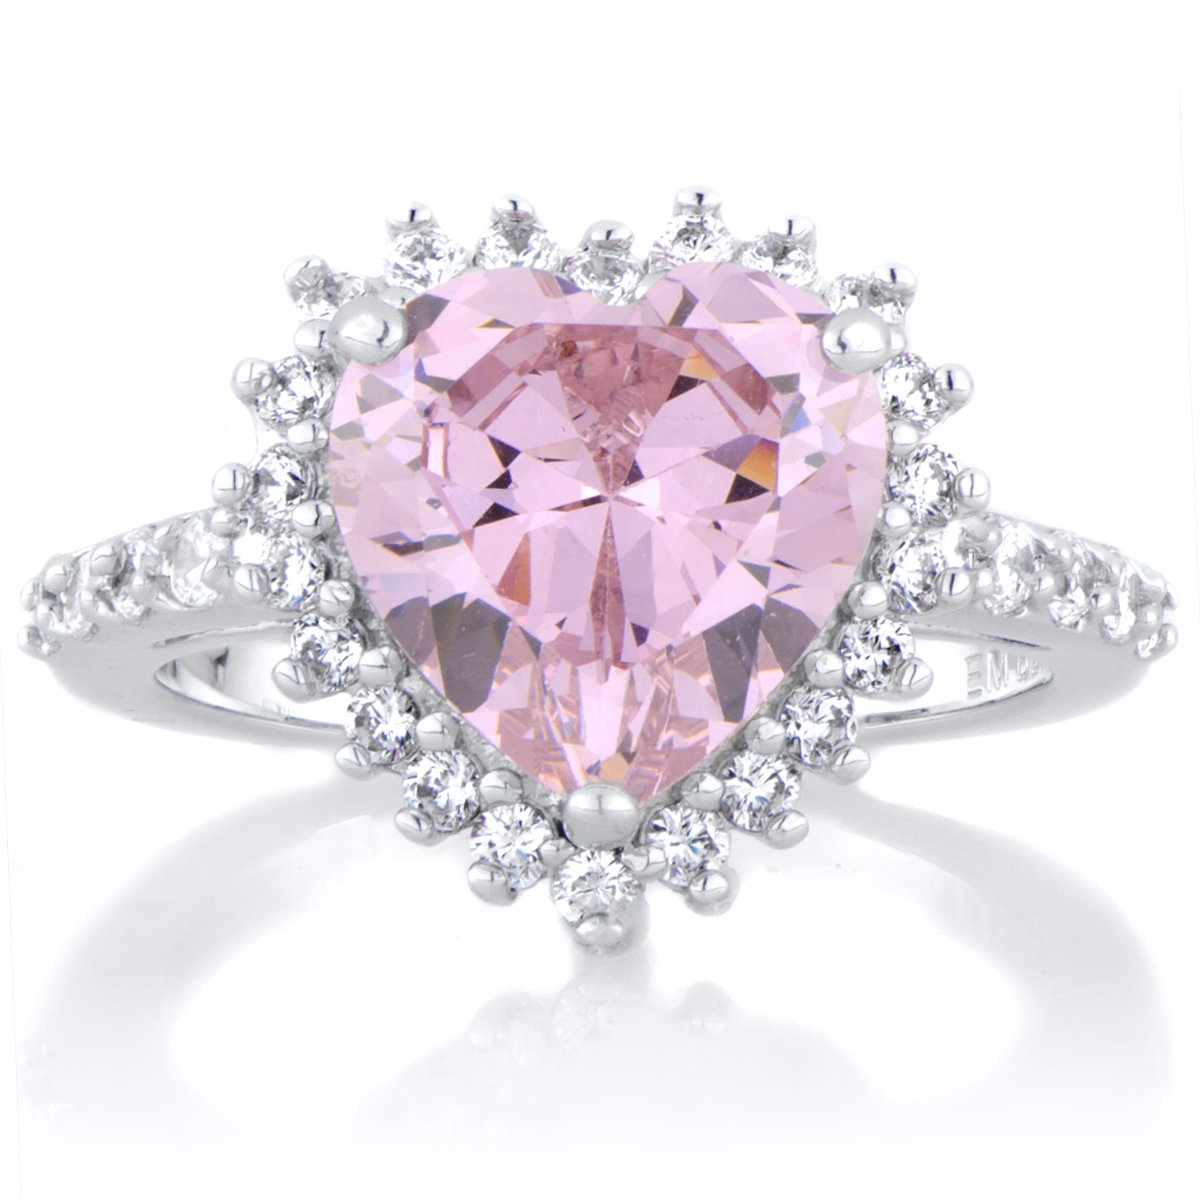 Darling\'s Heart Shaped Engagement Ring - Pink: Emitations: Amazon.co ...